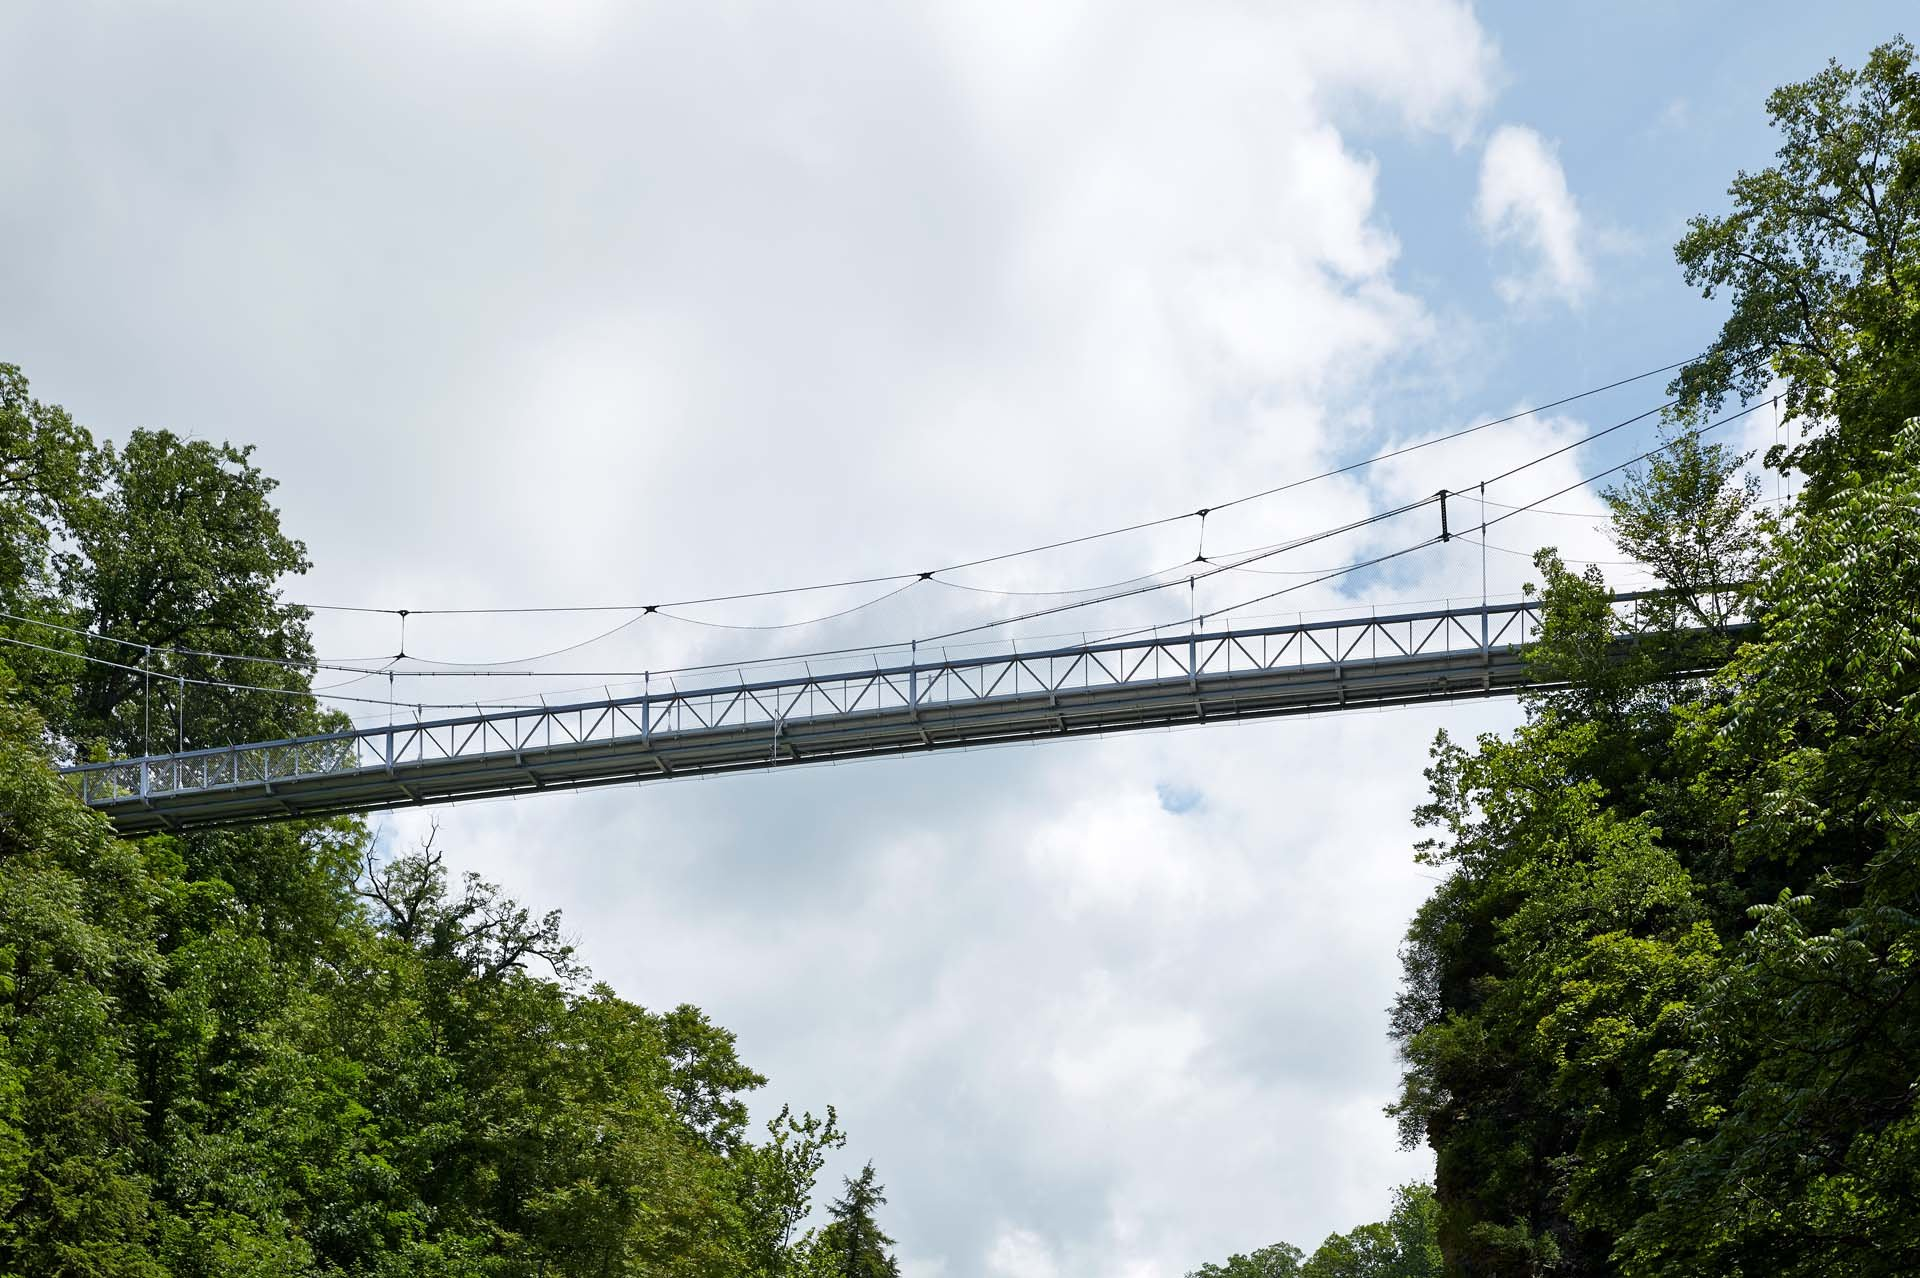 A bridge on the Cornell University Campus with a vertical safety net